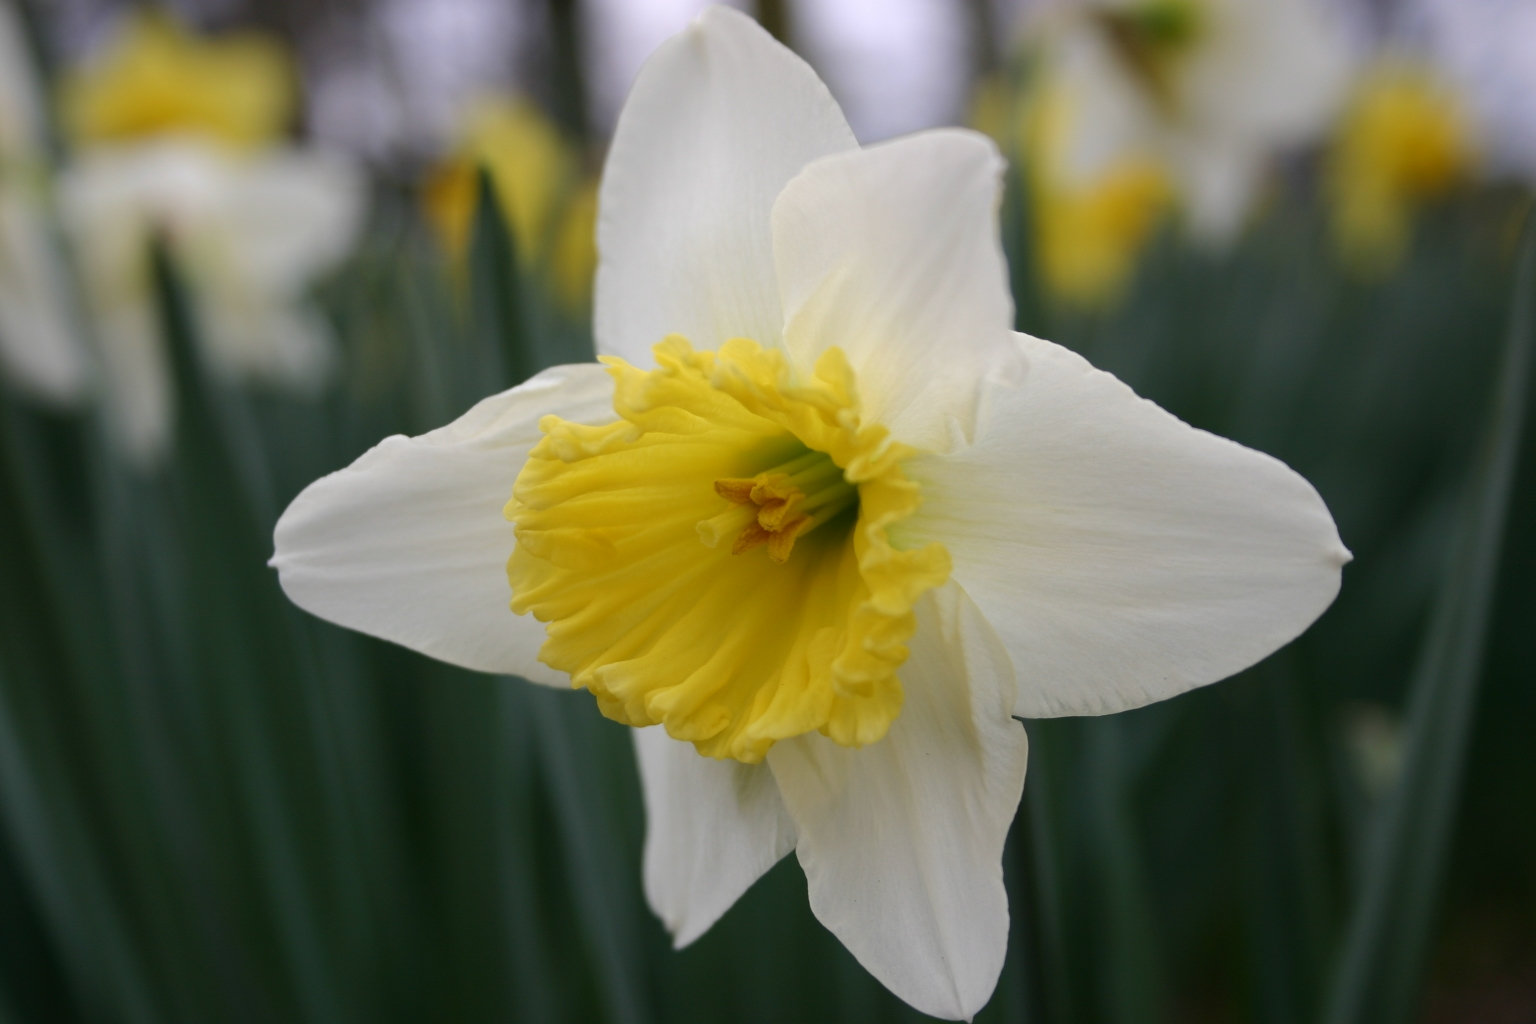 http://www.walterreeves.com/wp-content/uploads/2010/07/daffodil-4.jpg